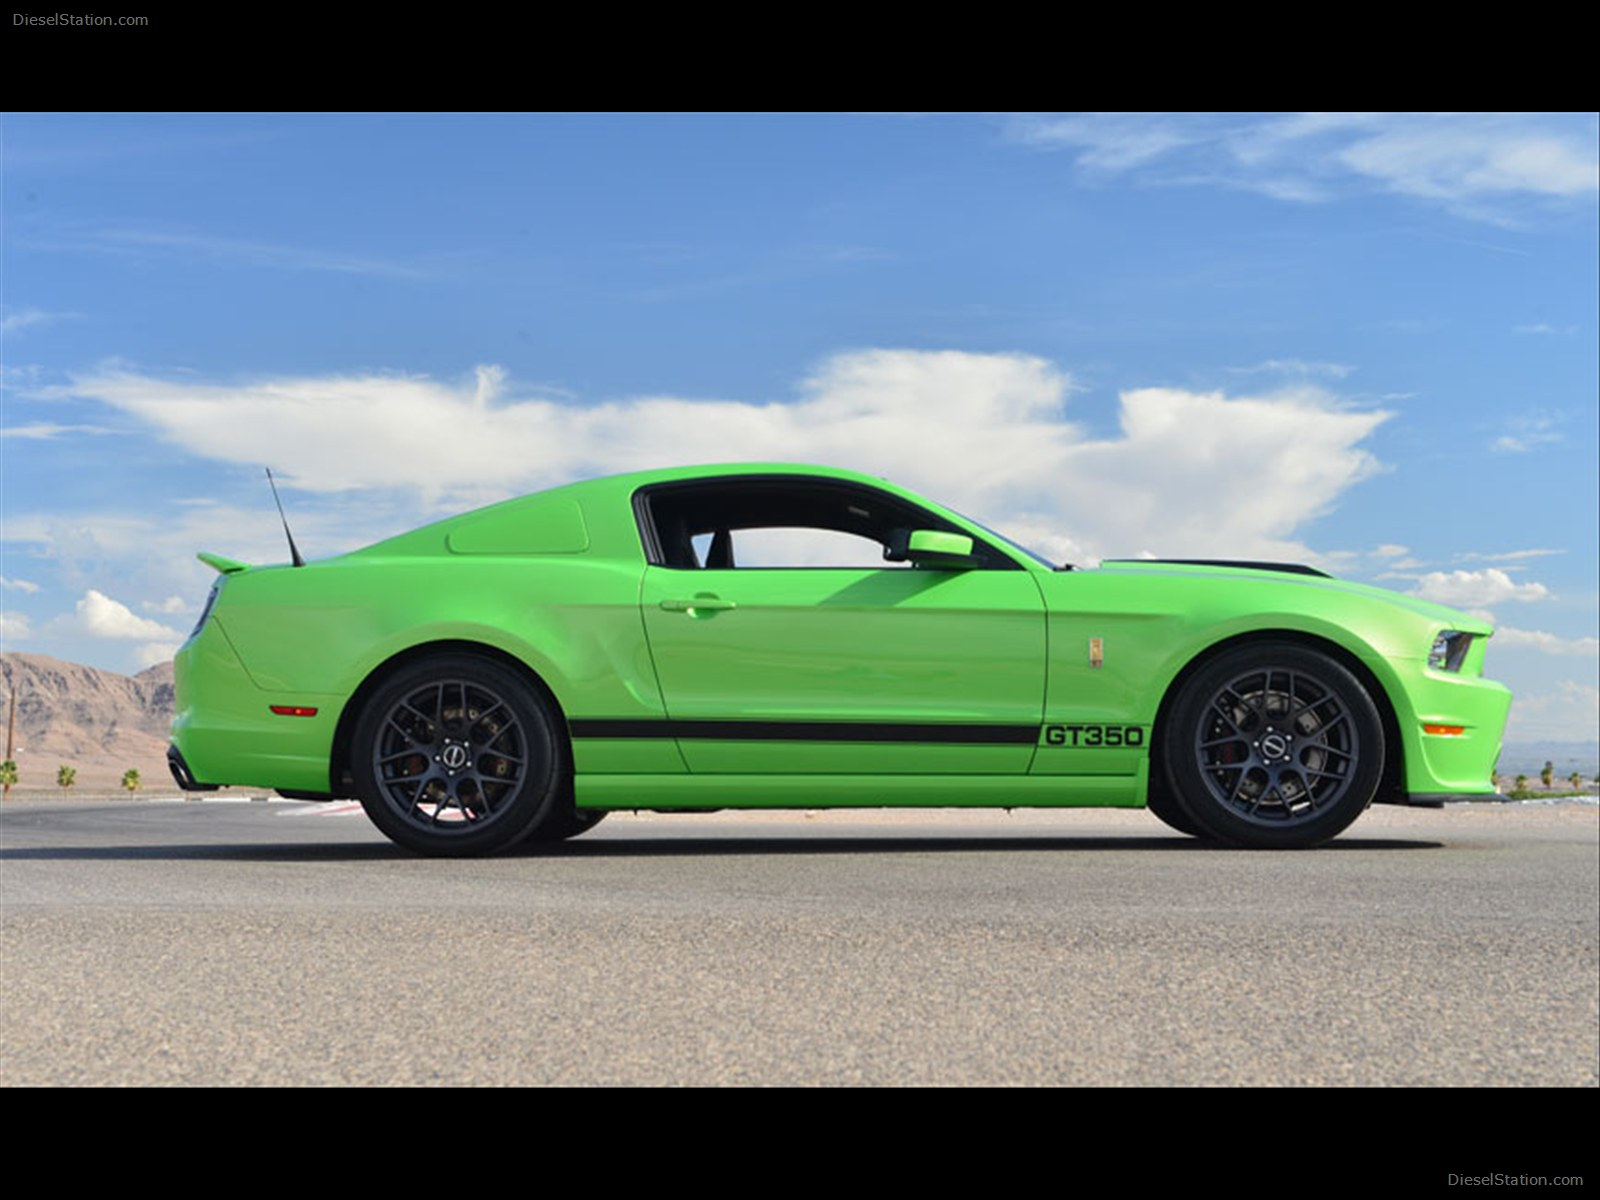 Shelby American GT350 2013 Exotic Car Wallpapers 02 of 18 Diesel 1600x1200